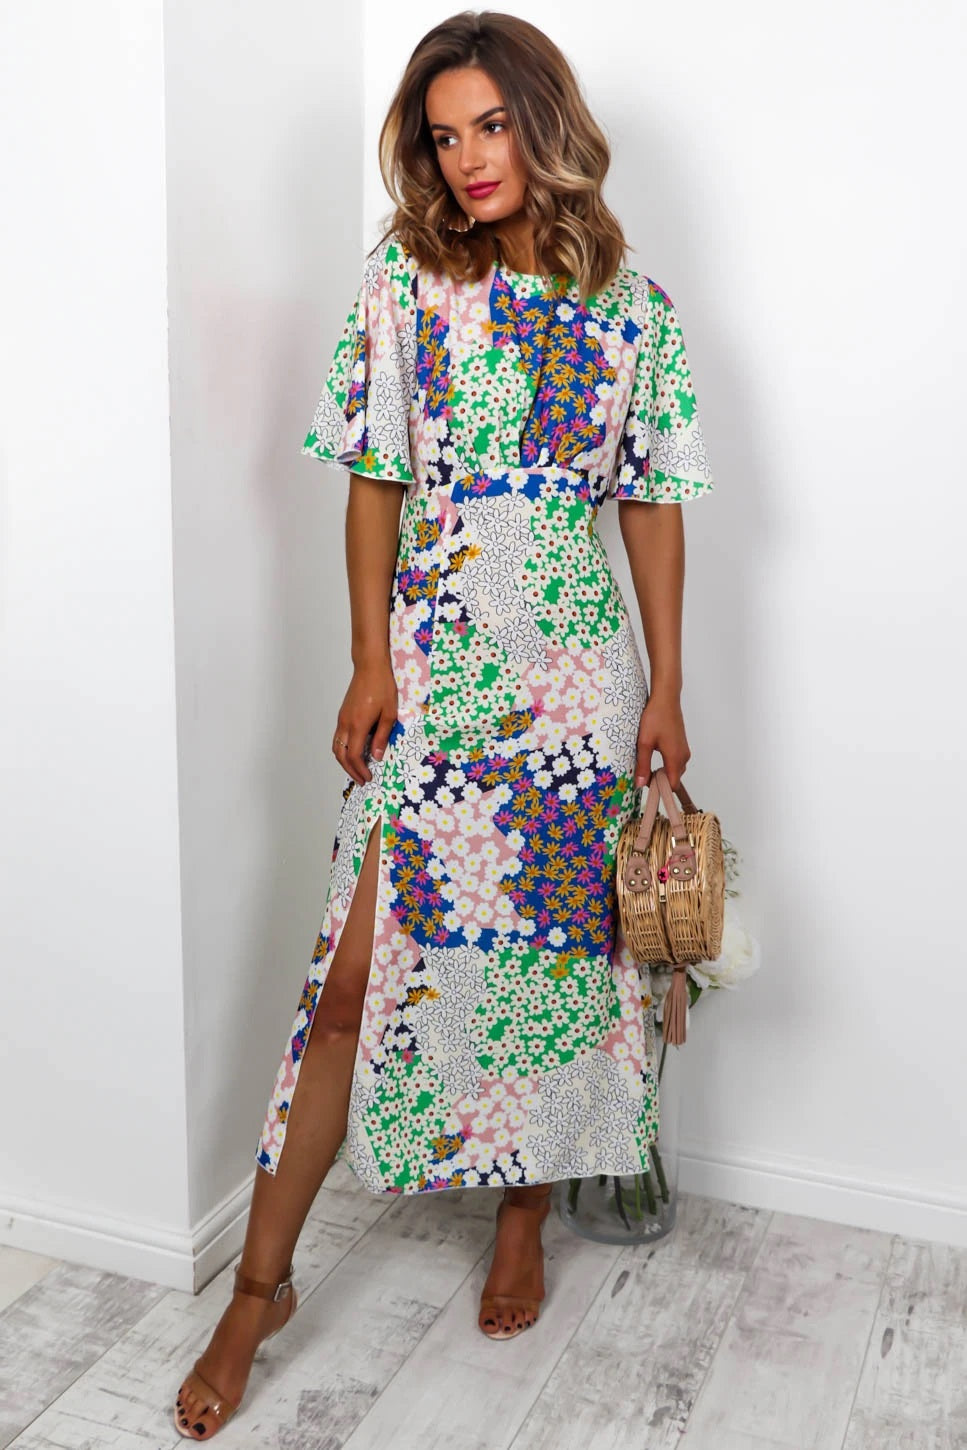 Let's Split - Maxi Dress In MULTI/FLORAL